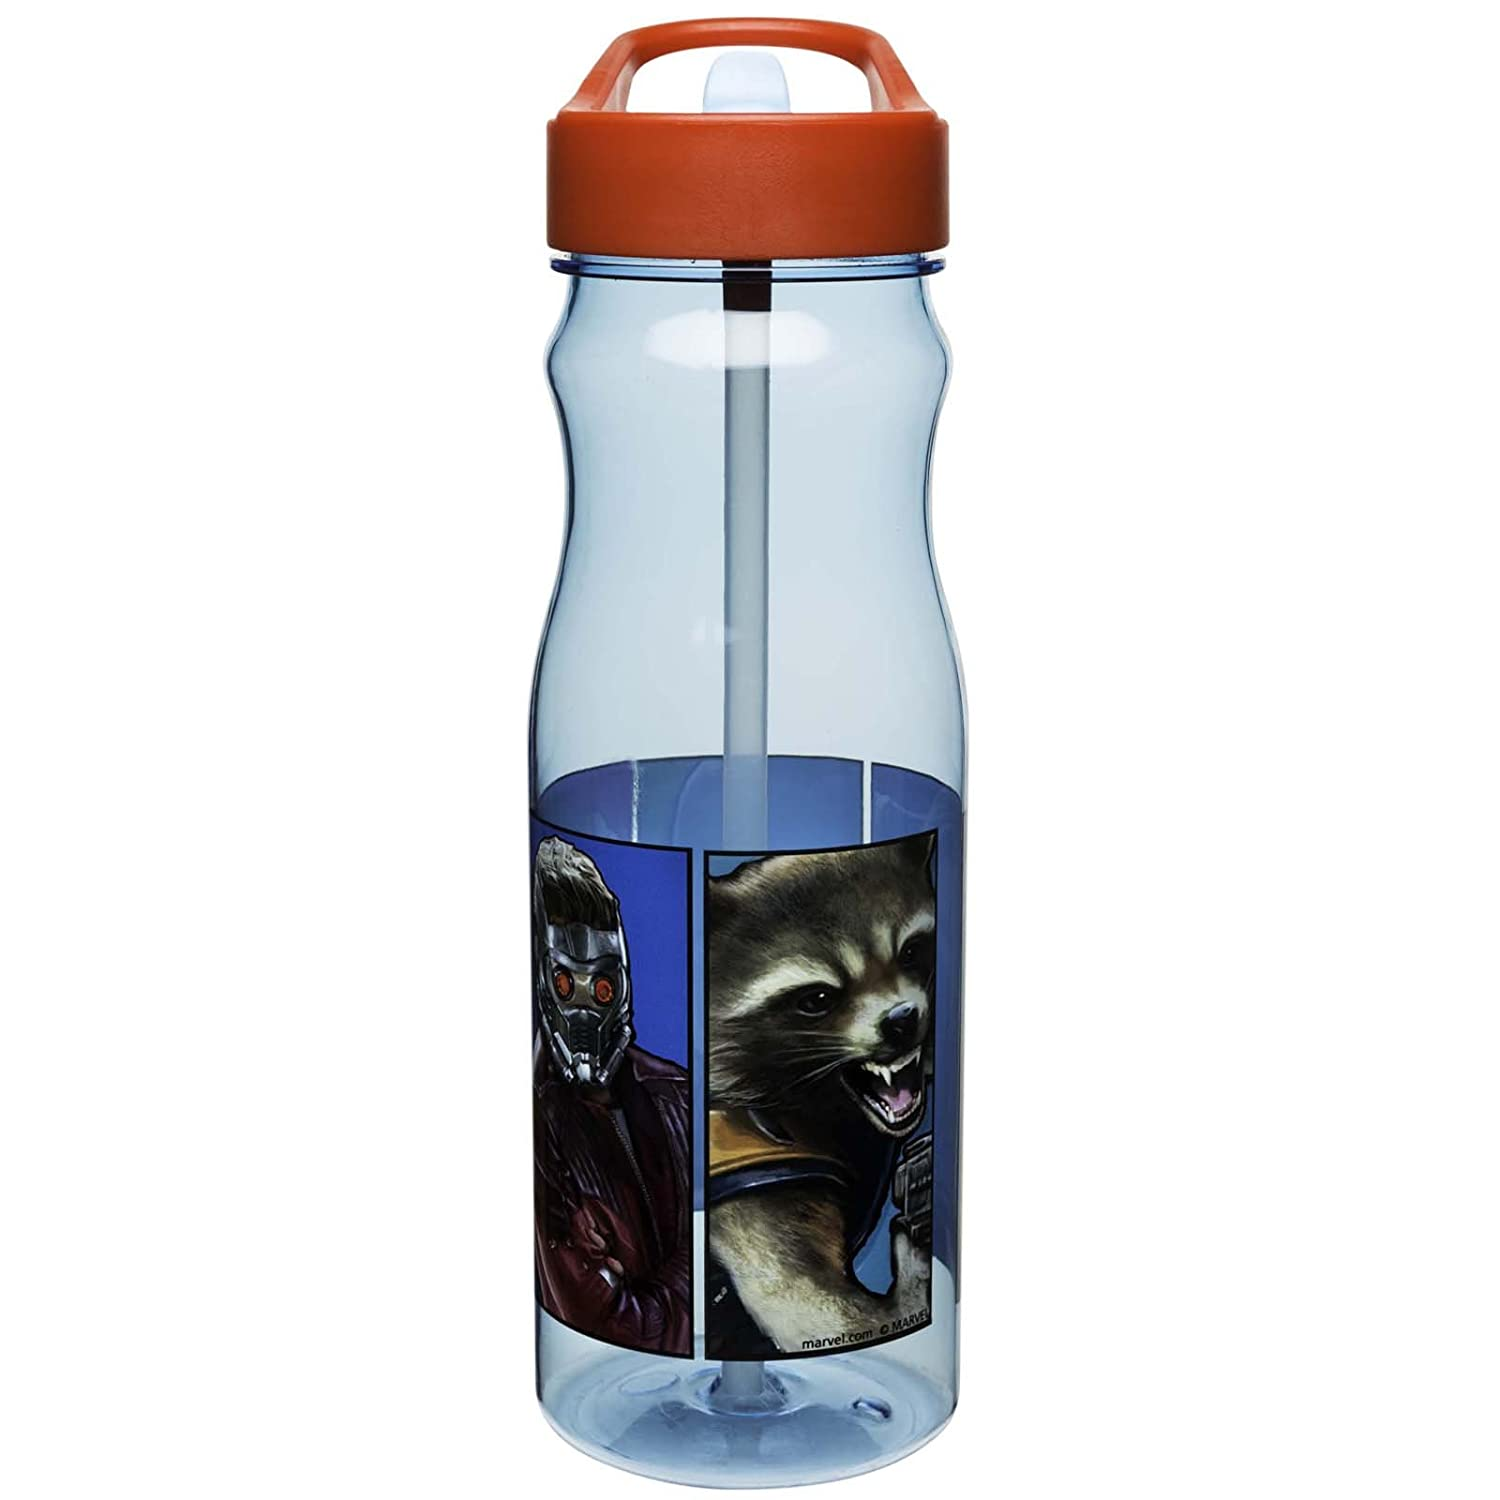 Guardians of the Galaxy 2 25 oz. Break-resistant and BPA-free plastic Designs Tritan Water Bottle with Flip-Up Spout and Straw Zak